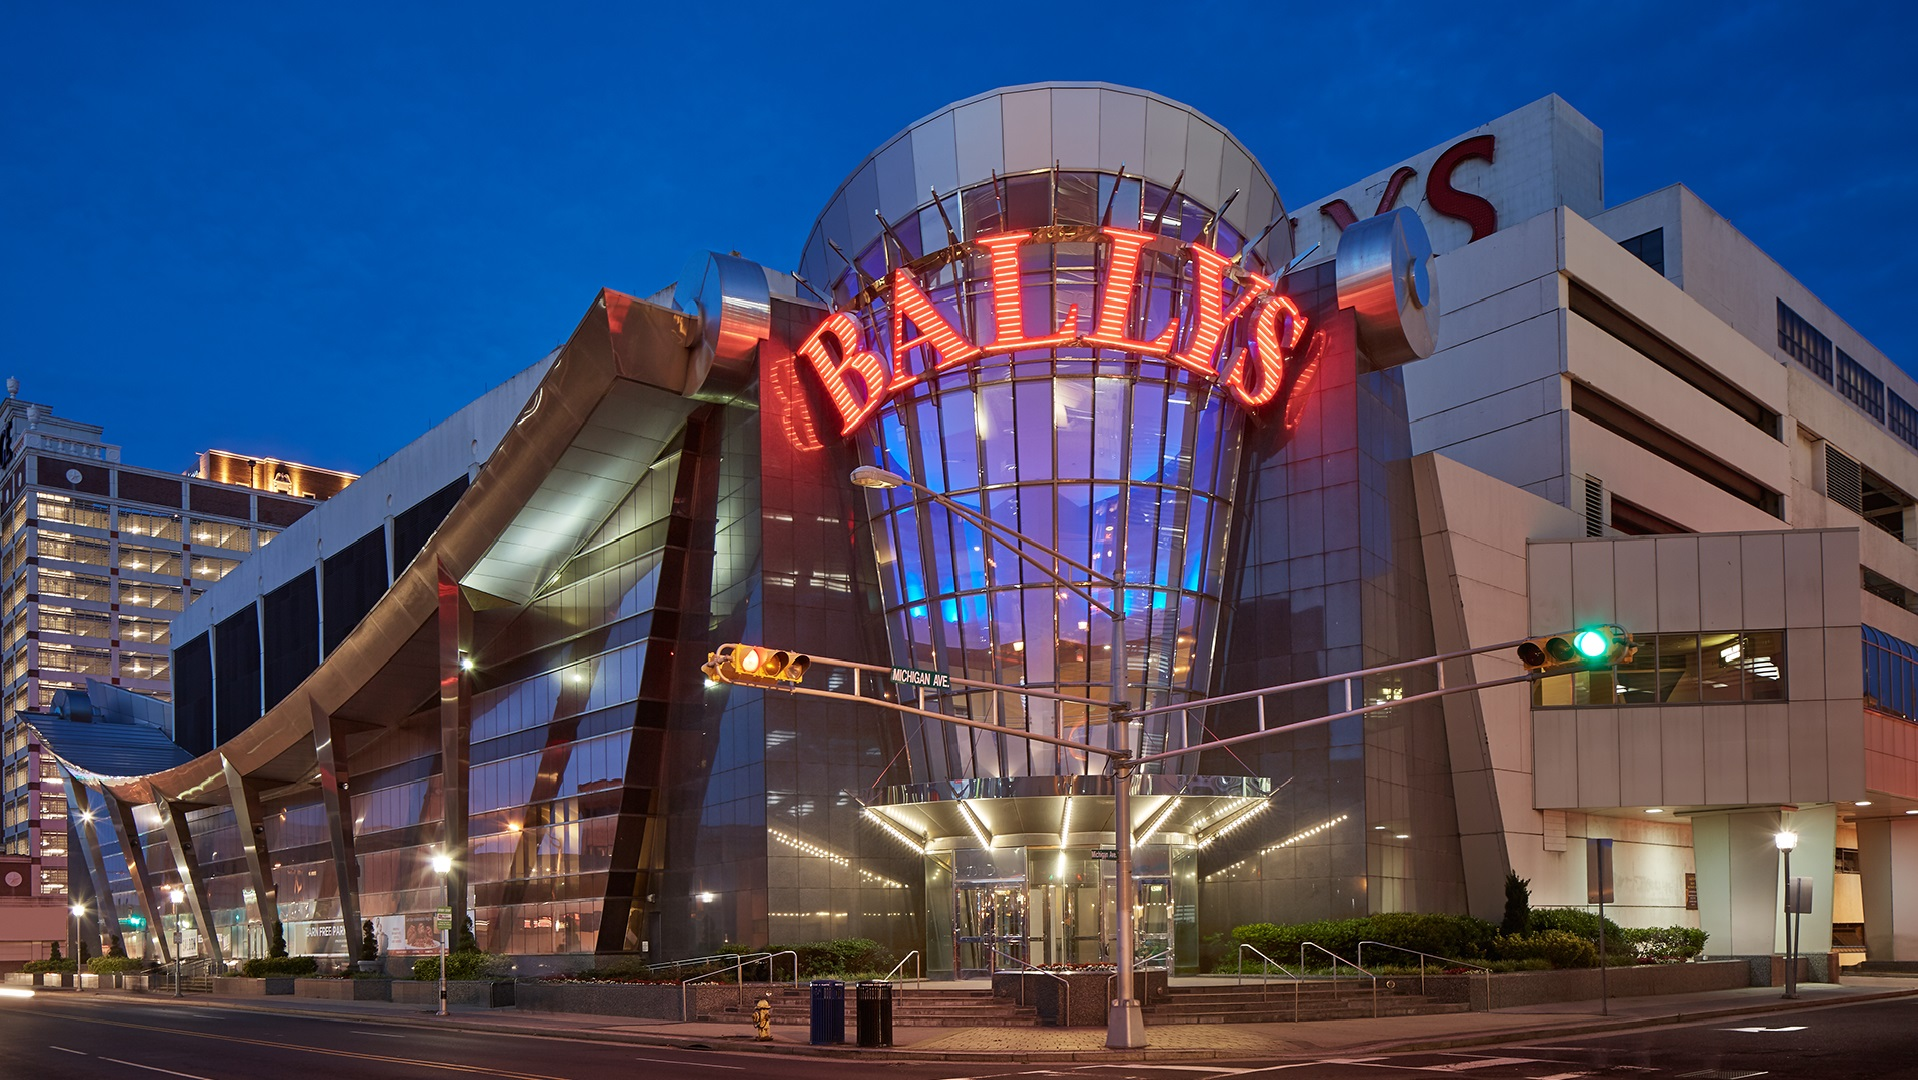 Bally s Atlantic City Casino - Bally s AC Casino Gambling